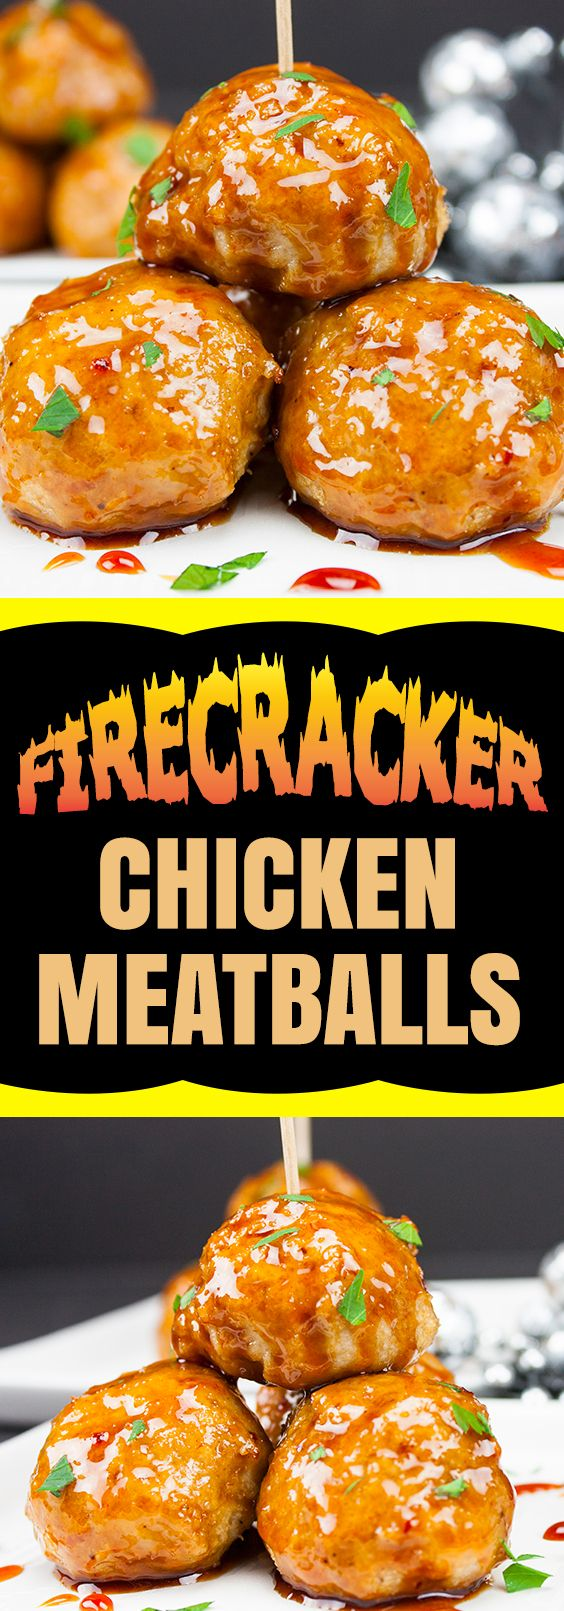 Firecracker Chicken Meatballs pack loads of spicy, sticky, slightly sweet flavor in one little morsel! They are perfect for any party or gathering.